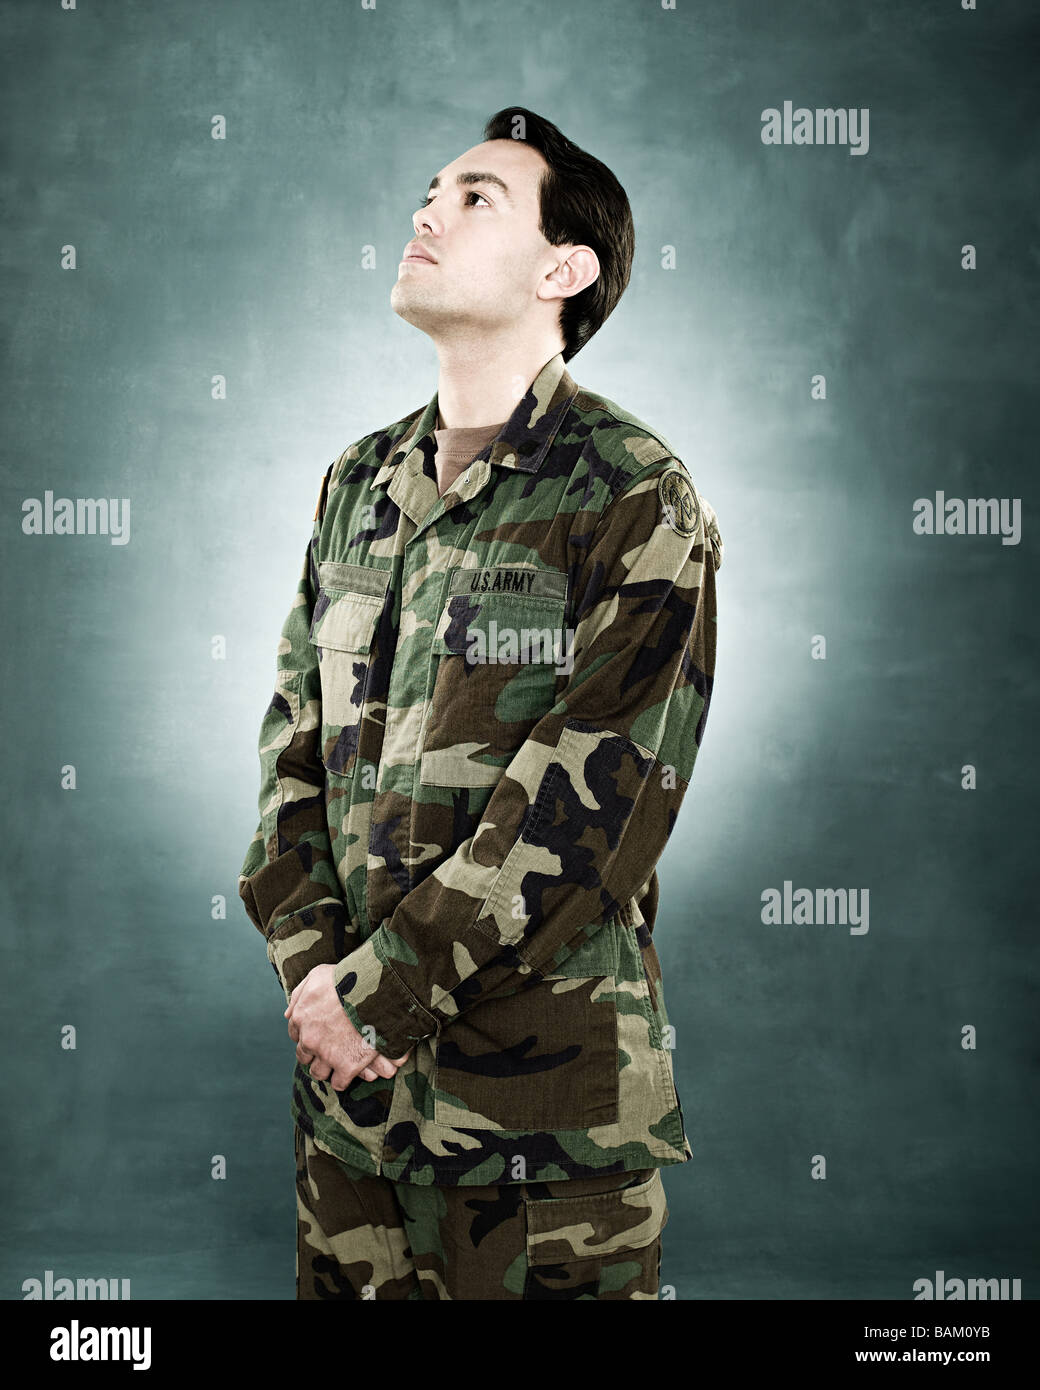 Portrait of a soldier - Stock Image